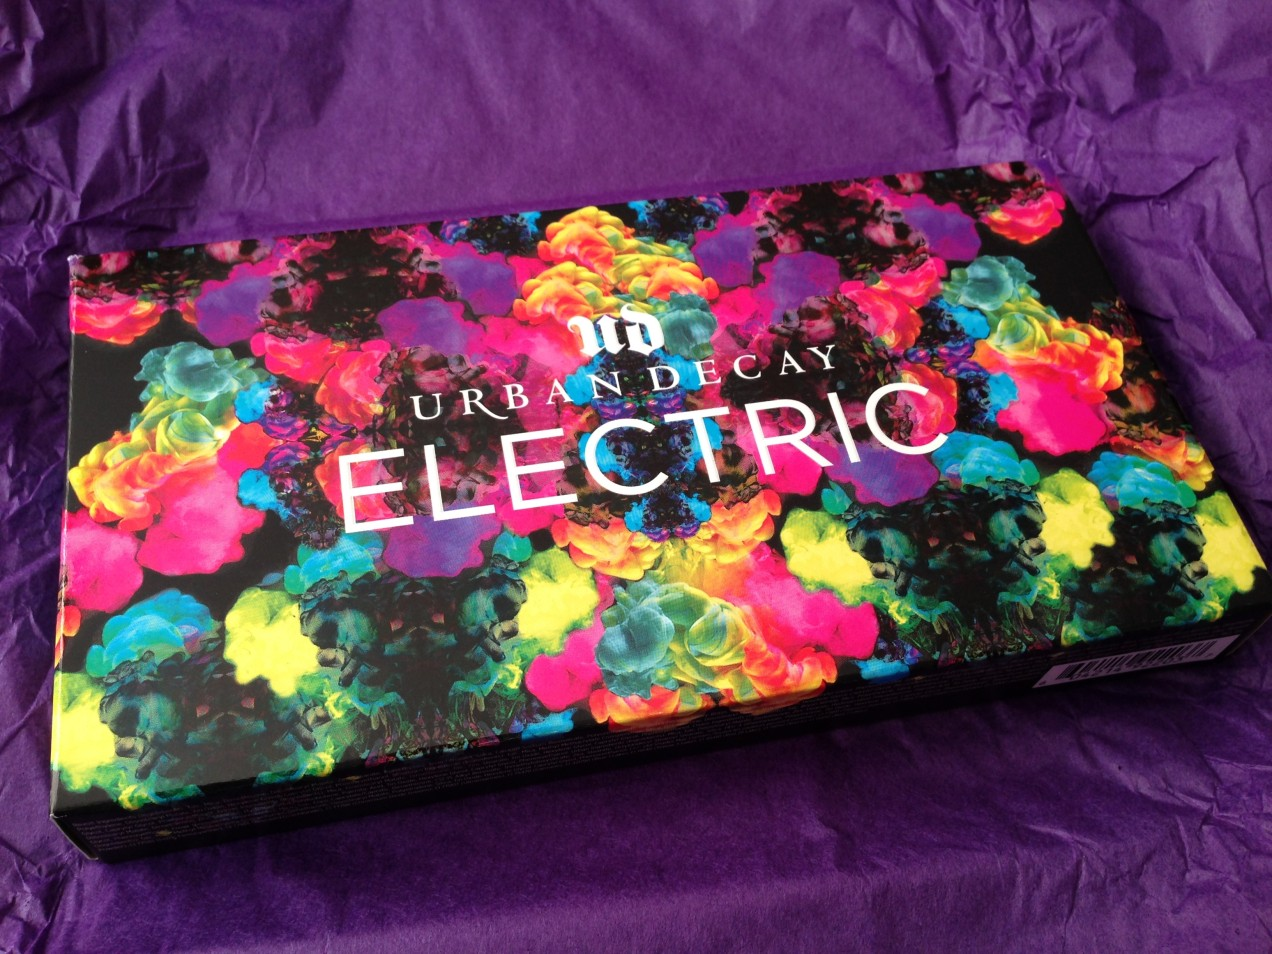 urban decay cosmetics electric pressed pigment palette. electric palette outside. pressed pigment palette, urban decay, decay cosmetics